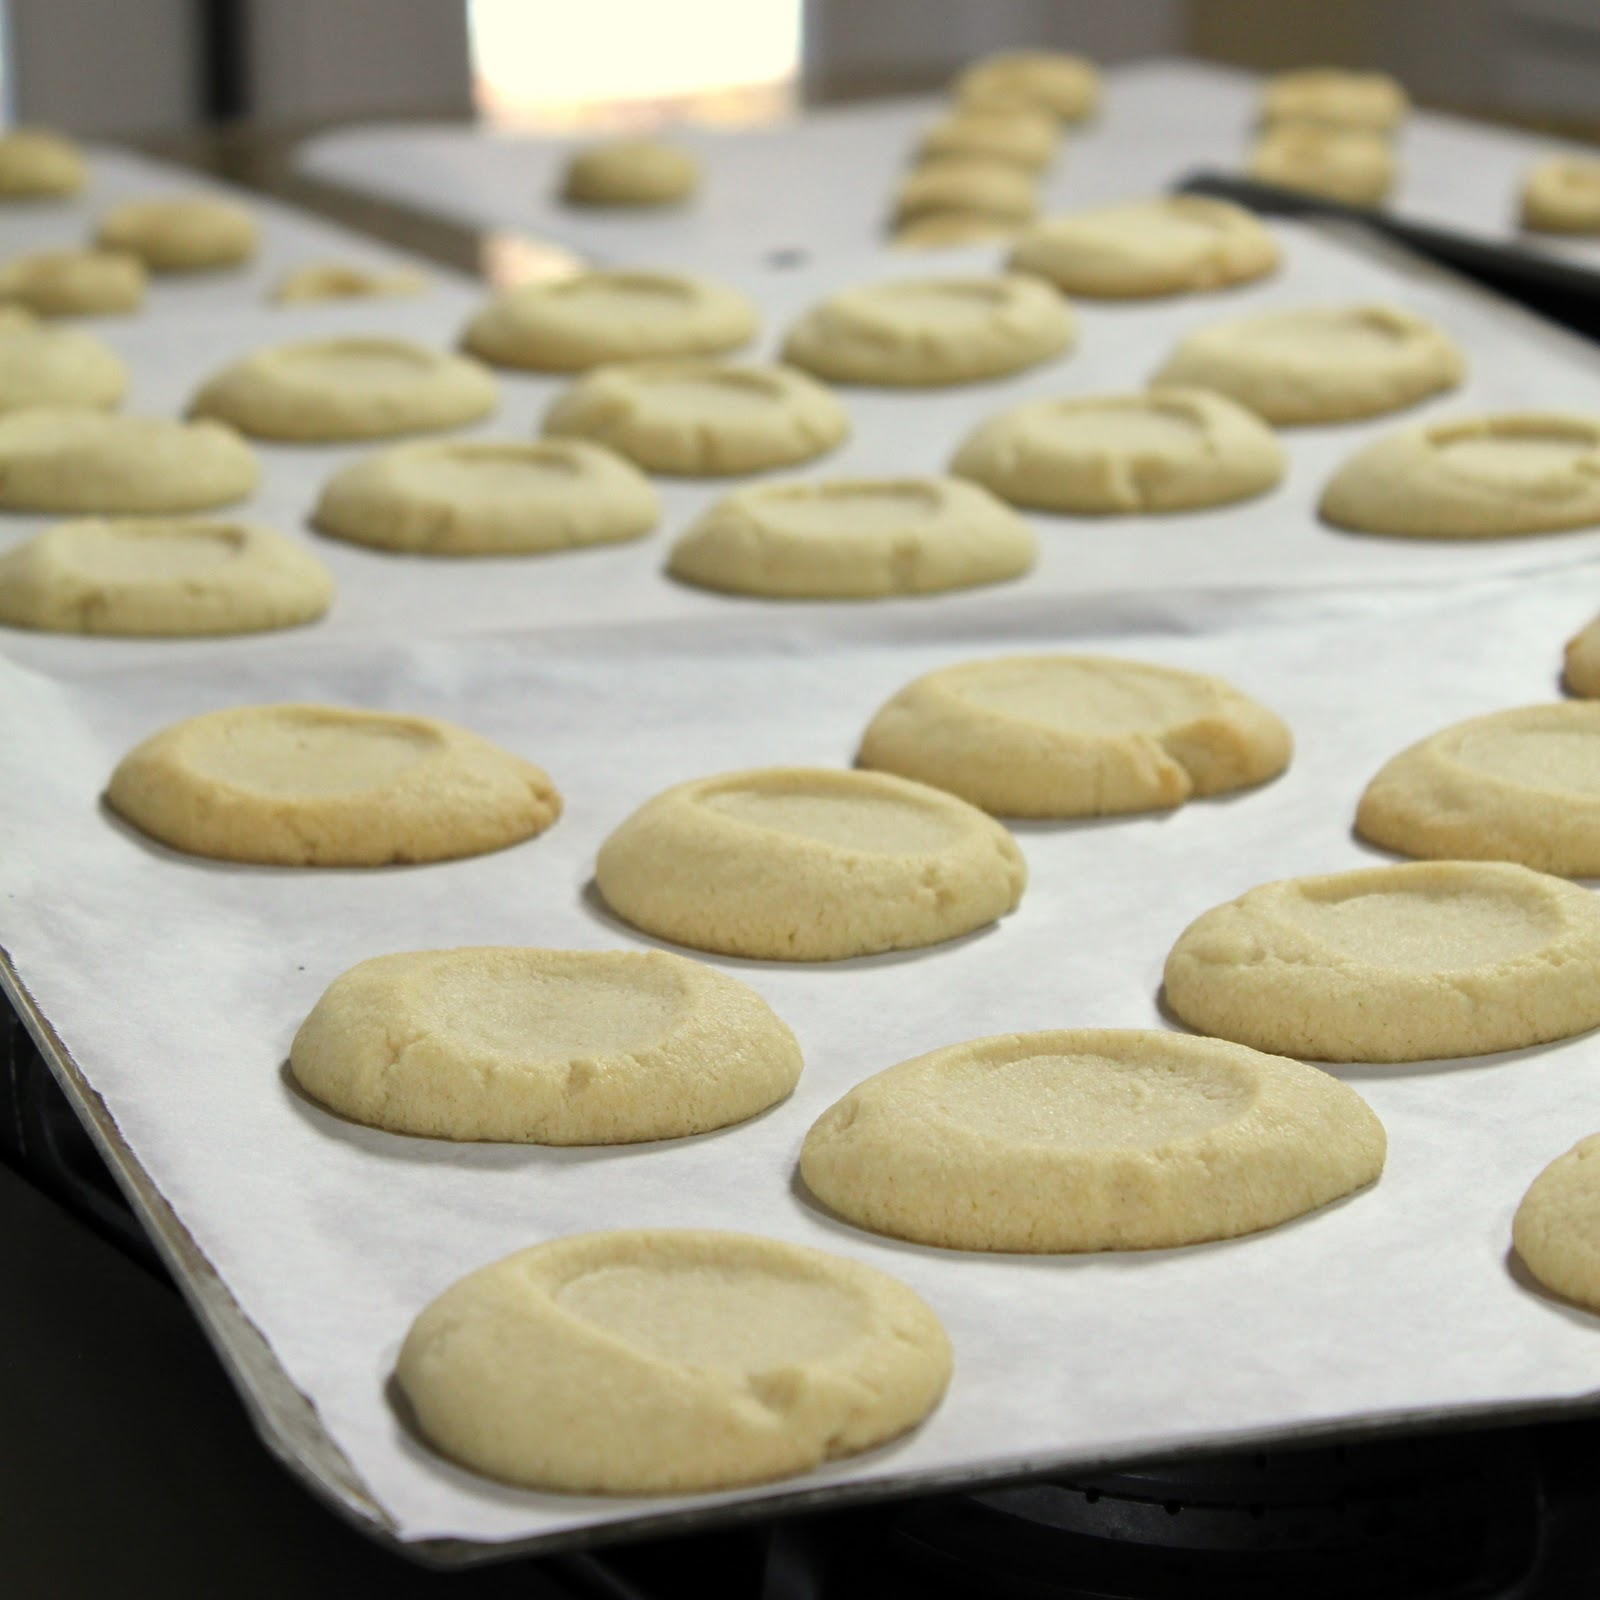 Bake for approximately 20 minutes. It will look like the craters have ...